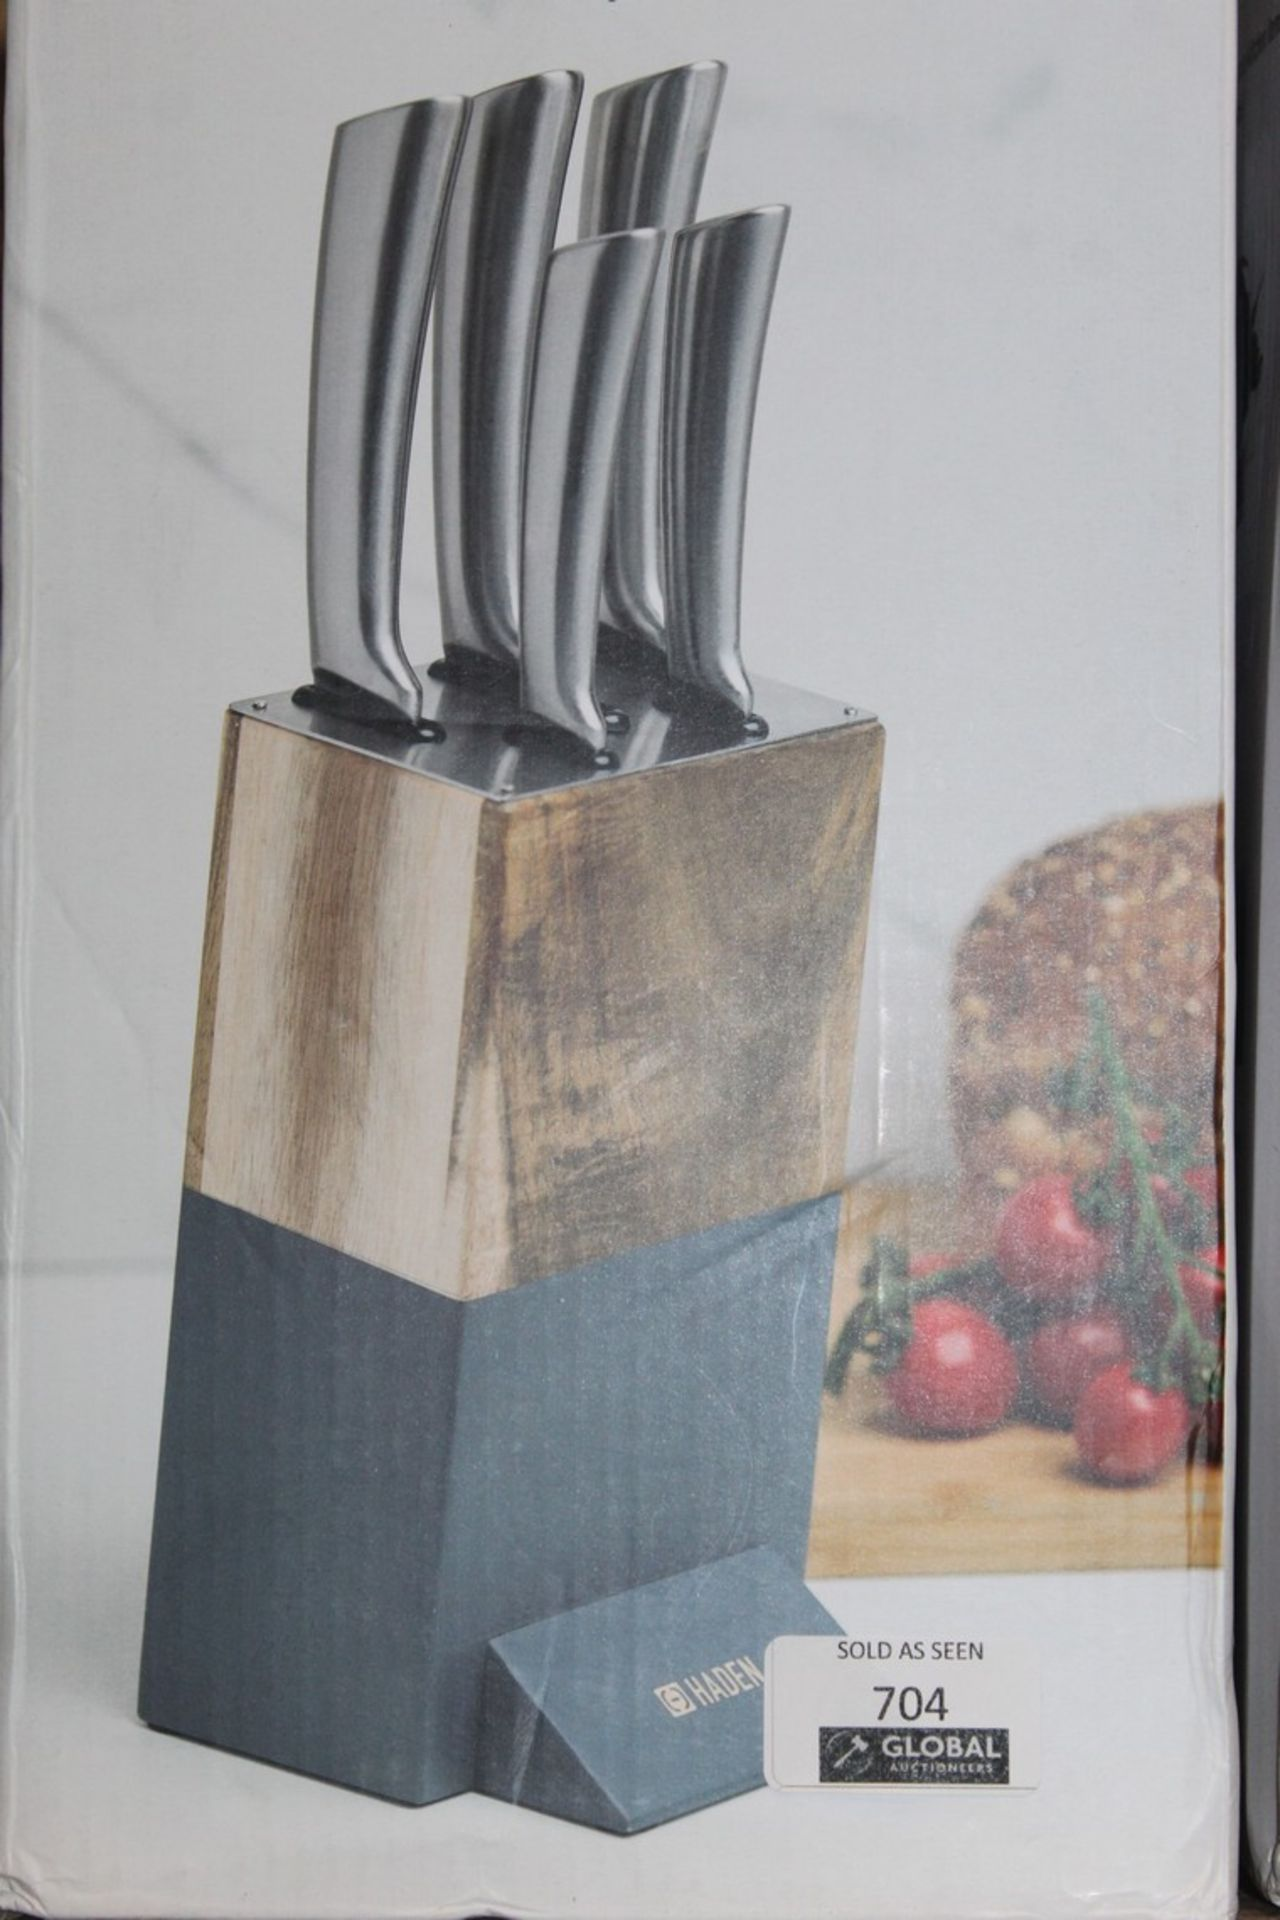 Boxed Hayden Perf Acacia Knife Block Set RRP £90 (Pictures Are For Illustration Purposes Only) (